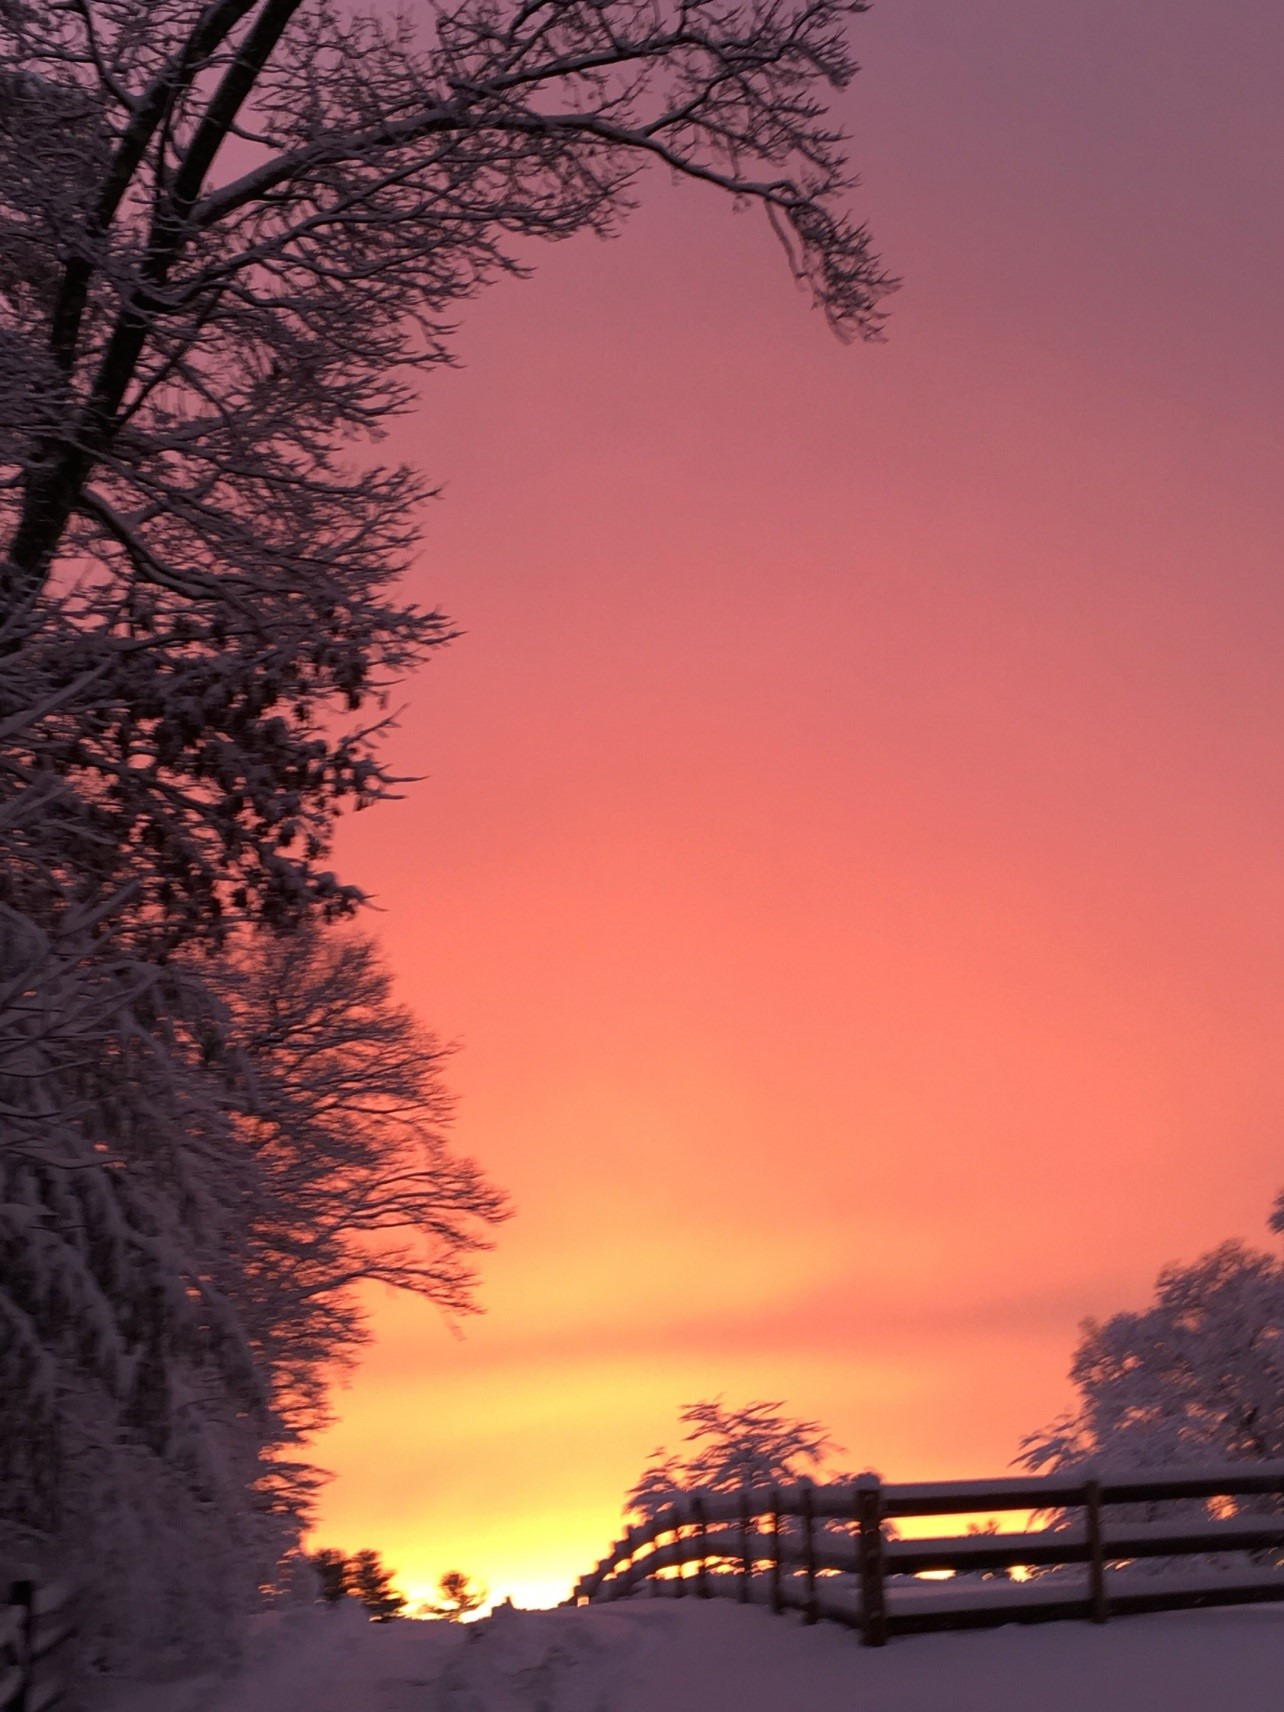 Winter sunsets, the very best kind!